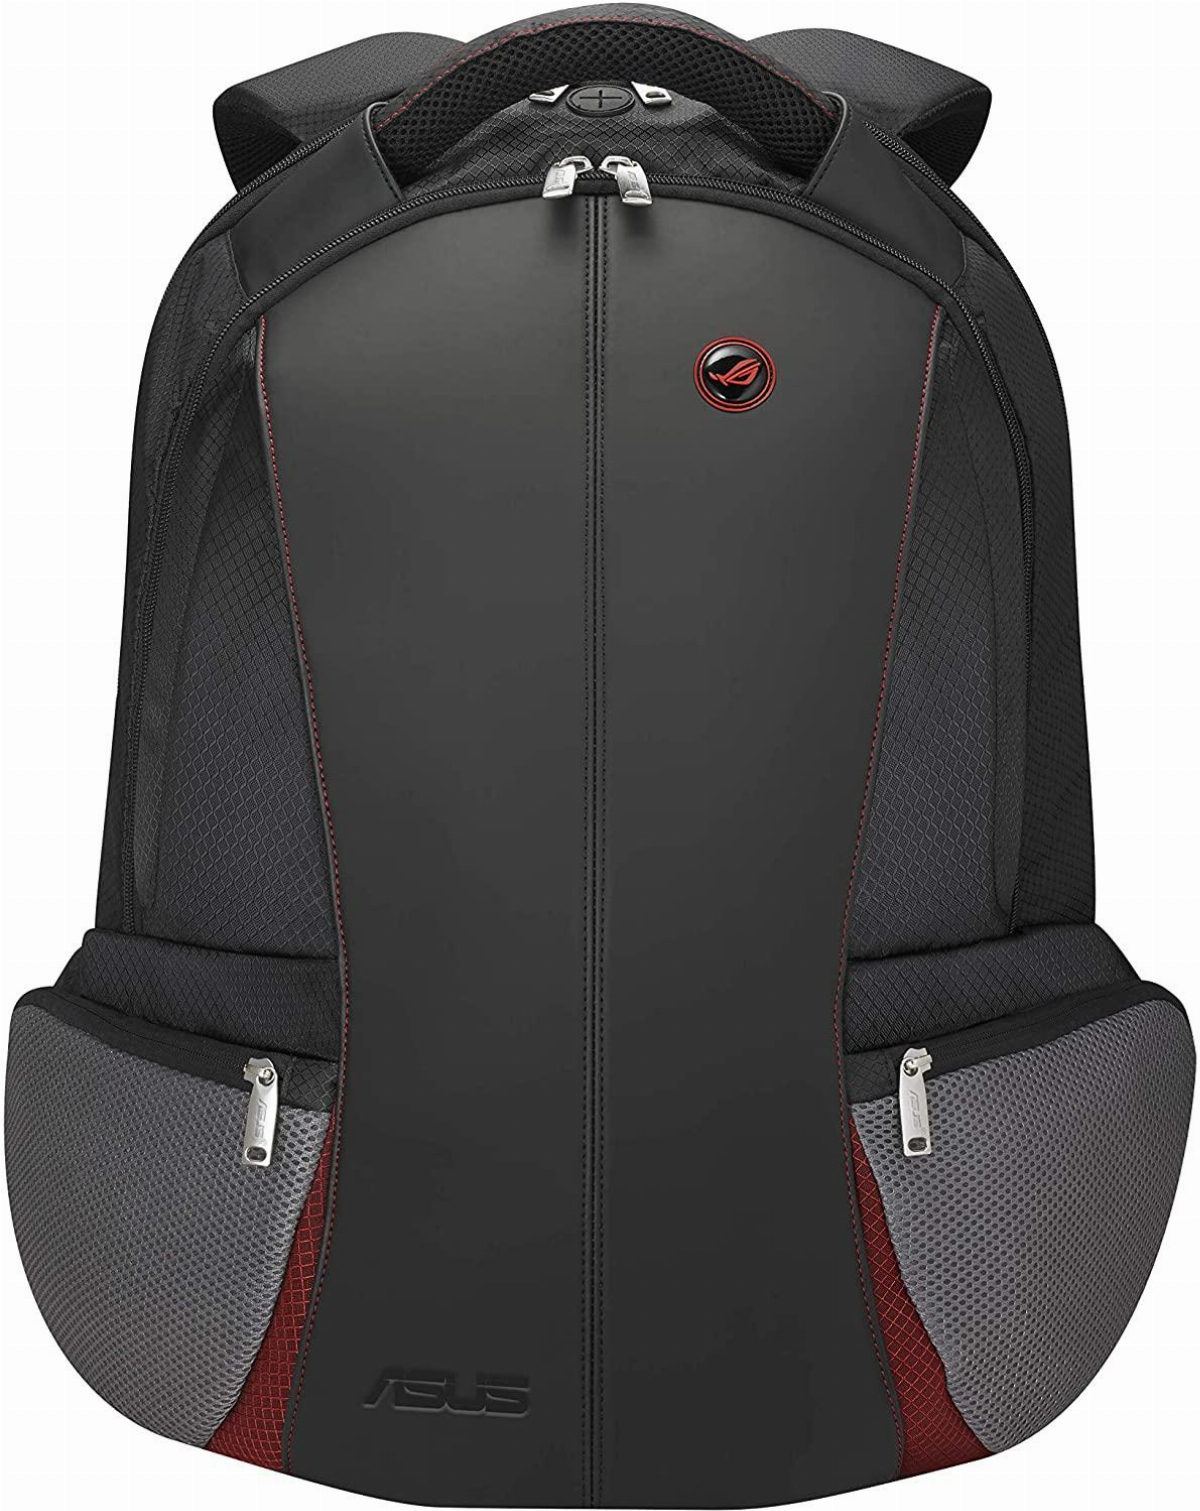 Раница за лаптоп ASUS ROG Artillery Backpack